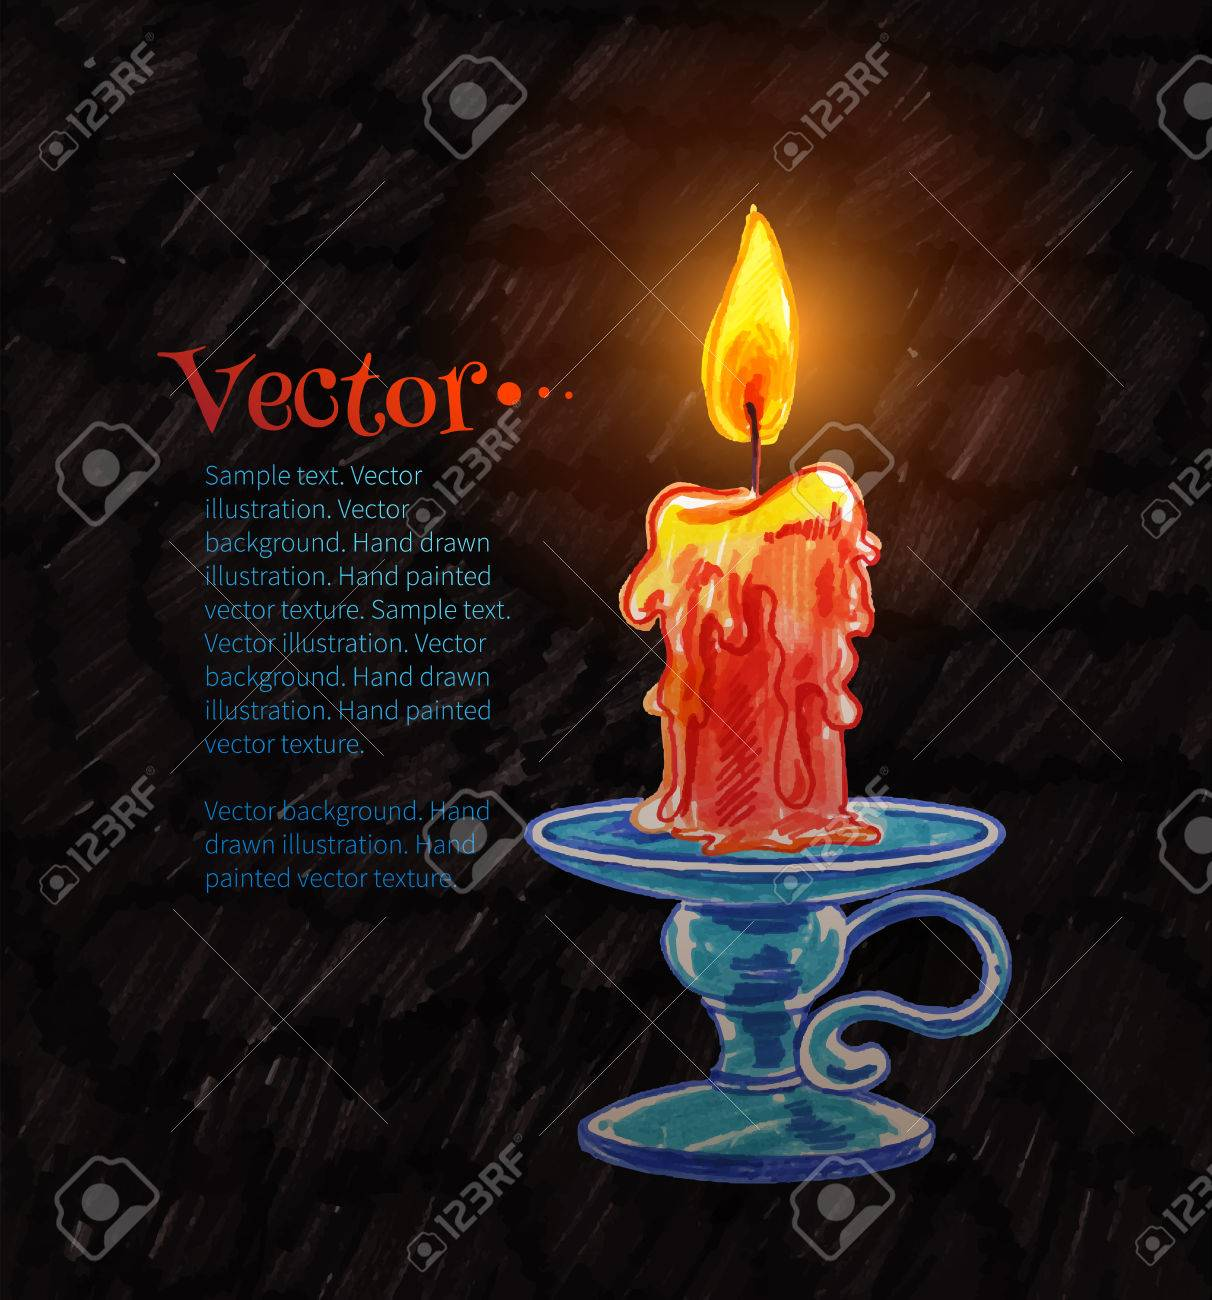 1212x1300 Felt Pen Drawing Of Burning Candle. Royalty Free Cliparts, Vectors